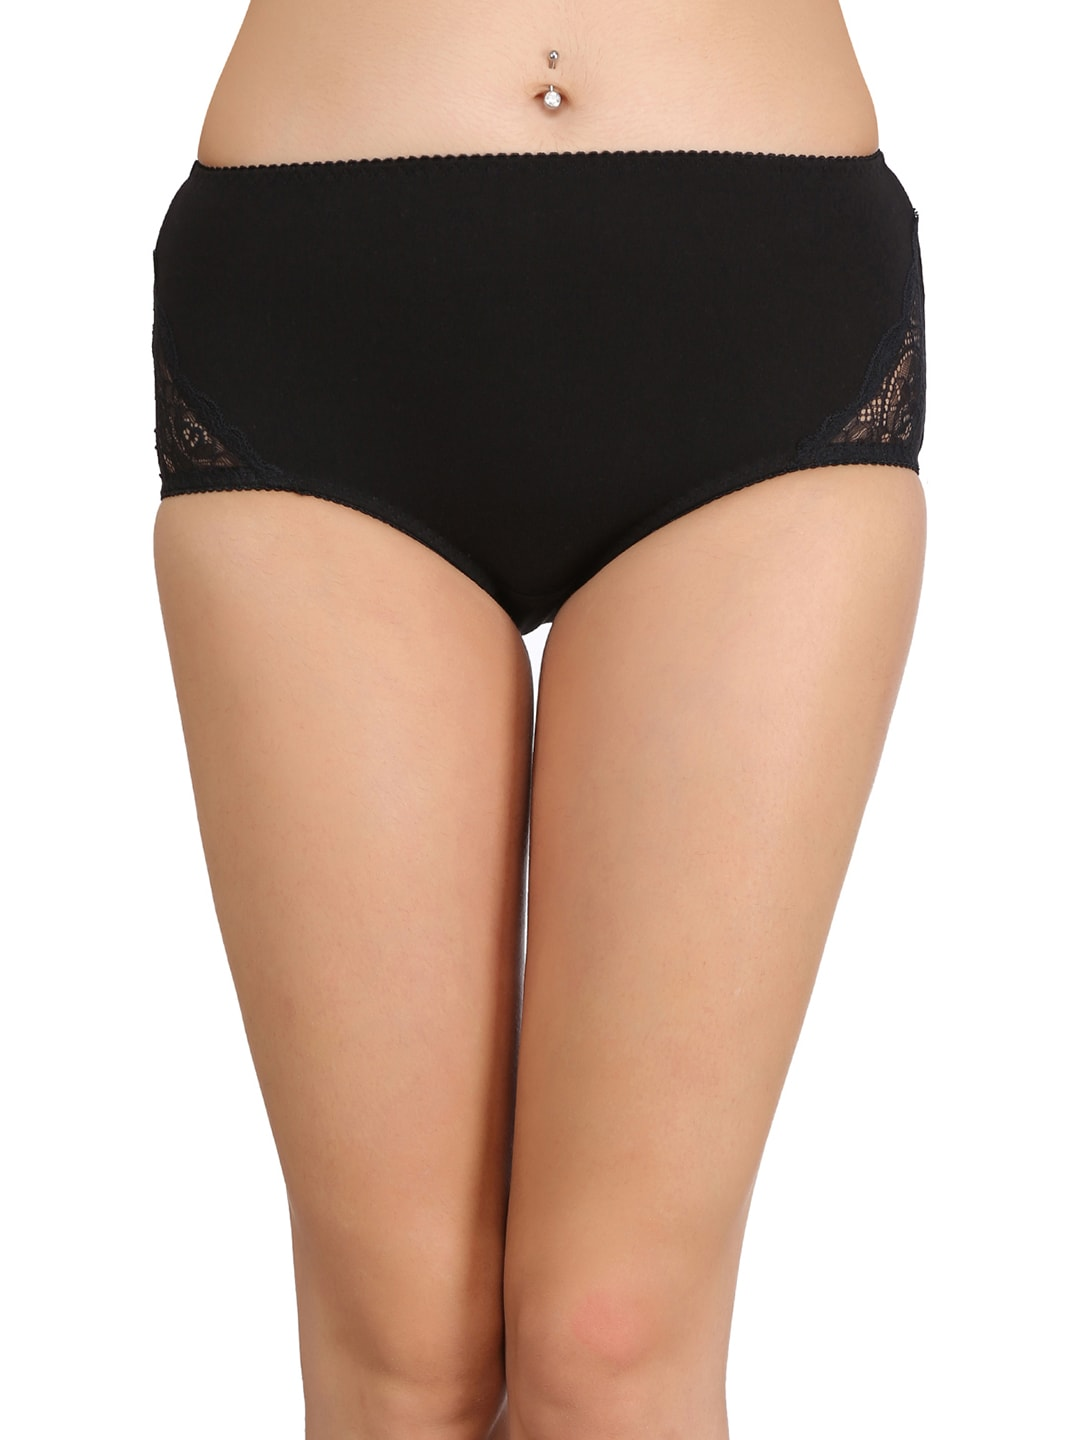 720bb26ad05 Clovia - Buy Lingerie from Clovia Store Online in India